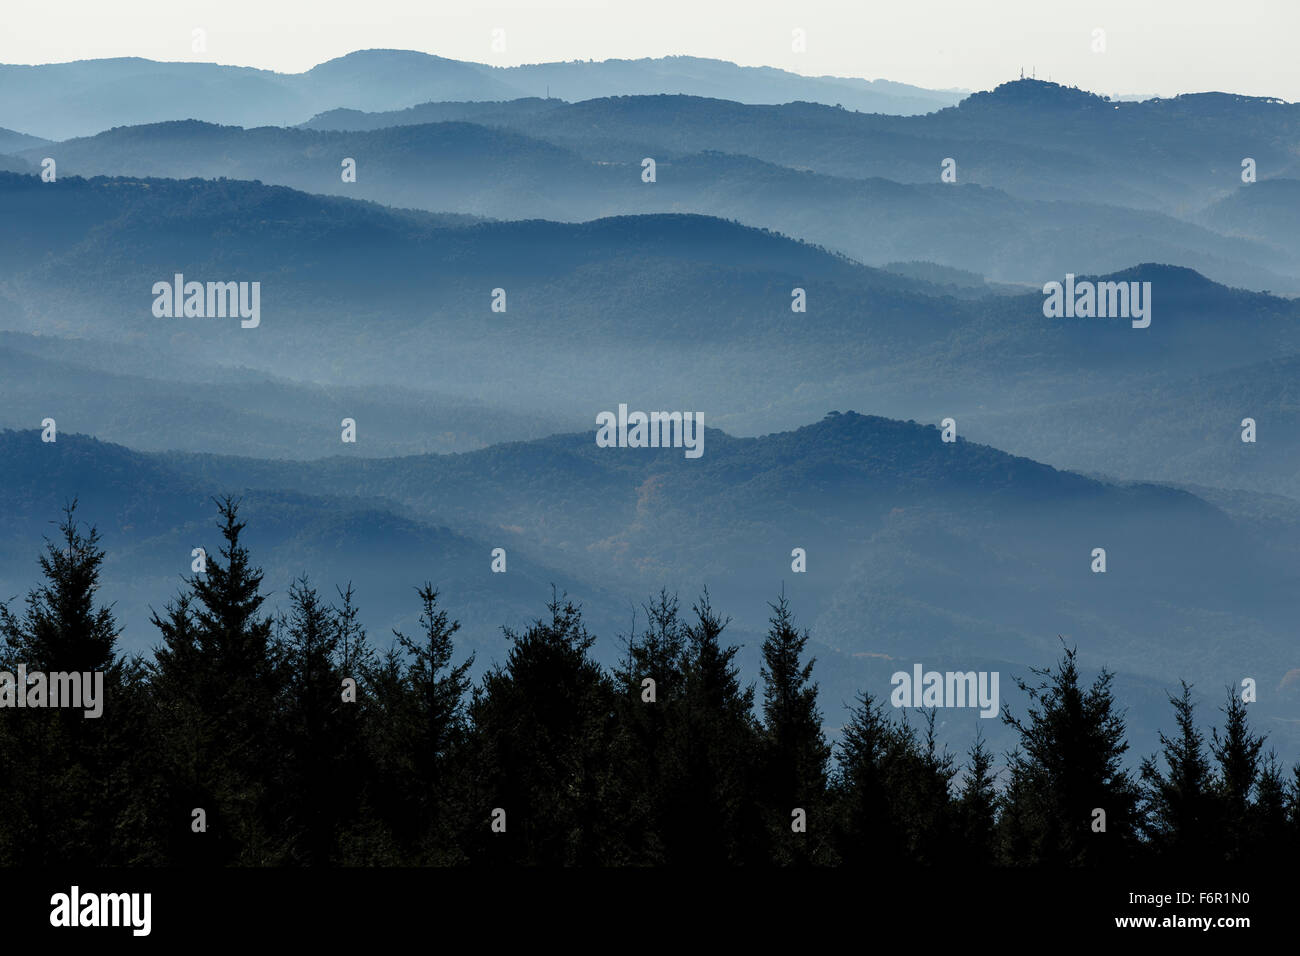 Forest and mountain in the fog. Montseny Natural Park. Barcelona. Cataluña. Spain. Europe - Stock Image